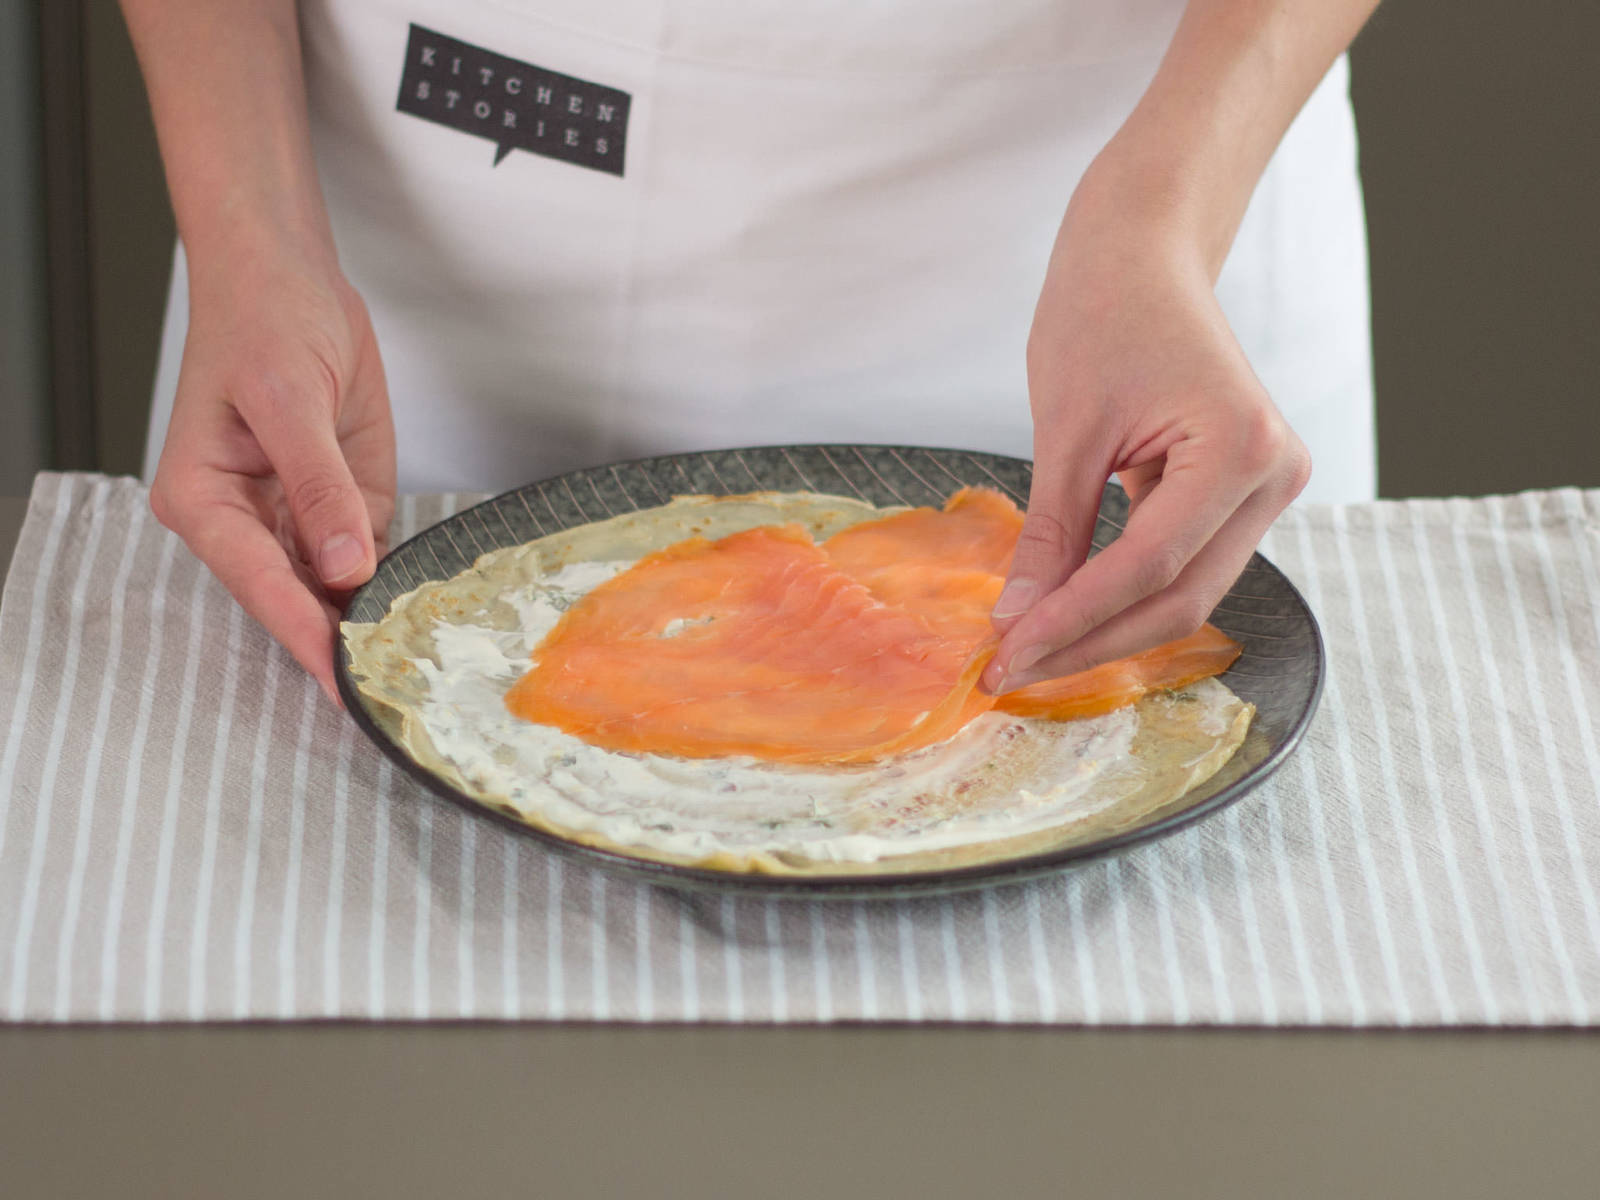 When the crepes have cooled down, spread an even, thin layer of crème fraiche on top, fill with smoked salmon, and roll up for serving. Garnish with a dollop of crème fraiche and salmon caviar.